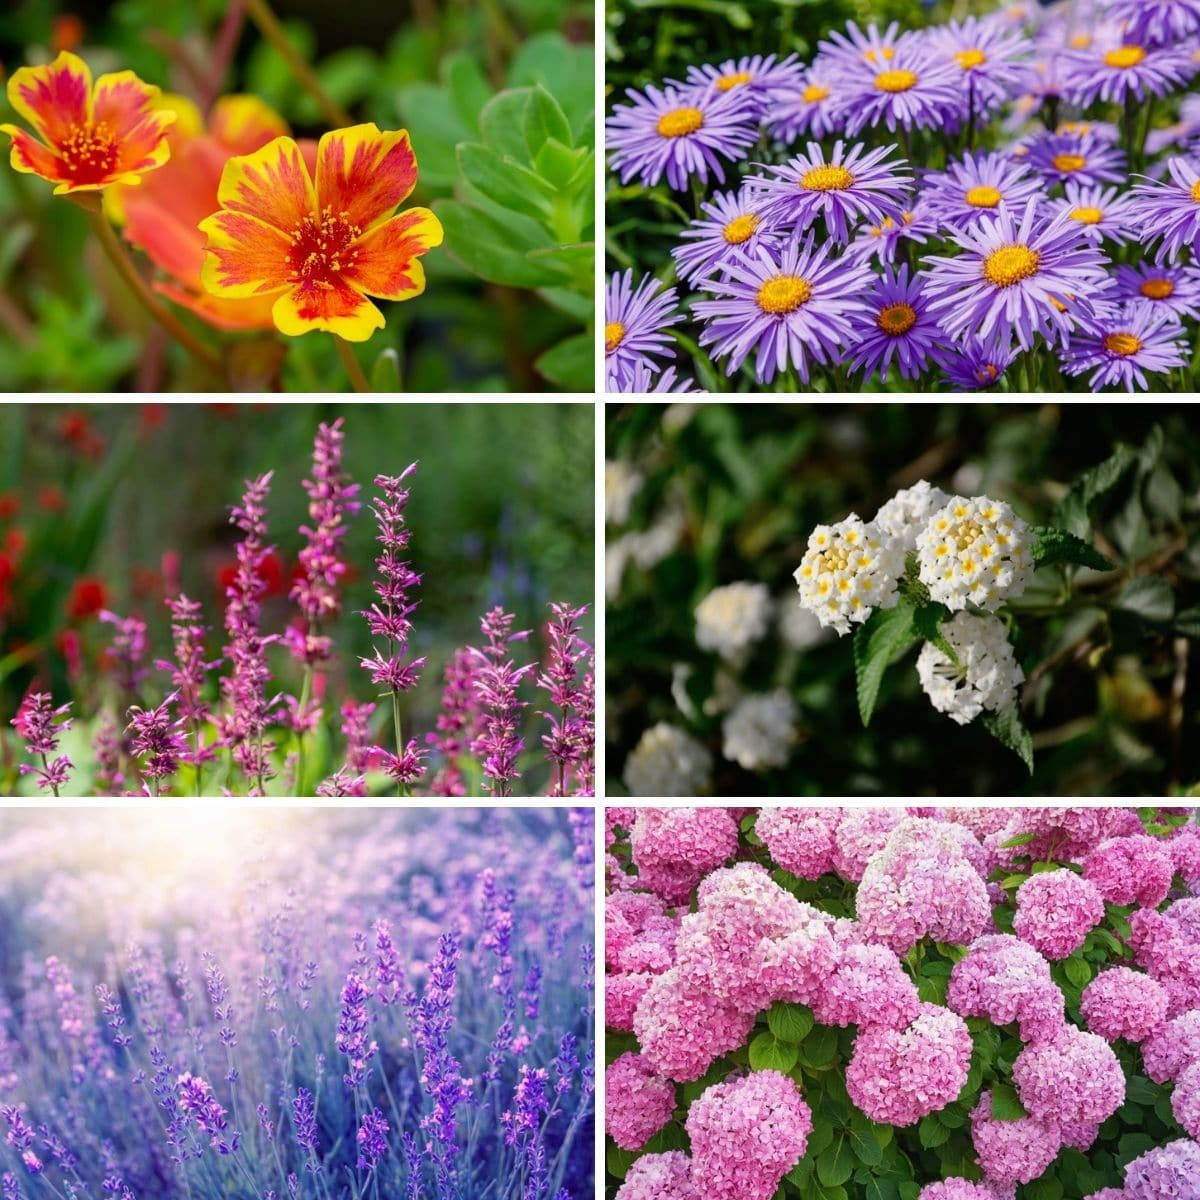 Photo collage featuring drought-tolerant plants from the post.